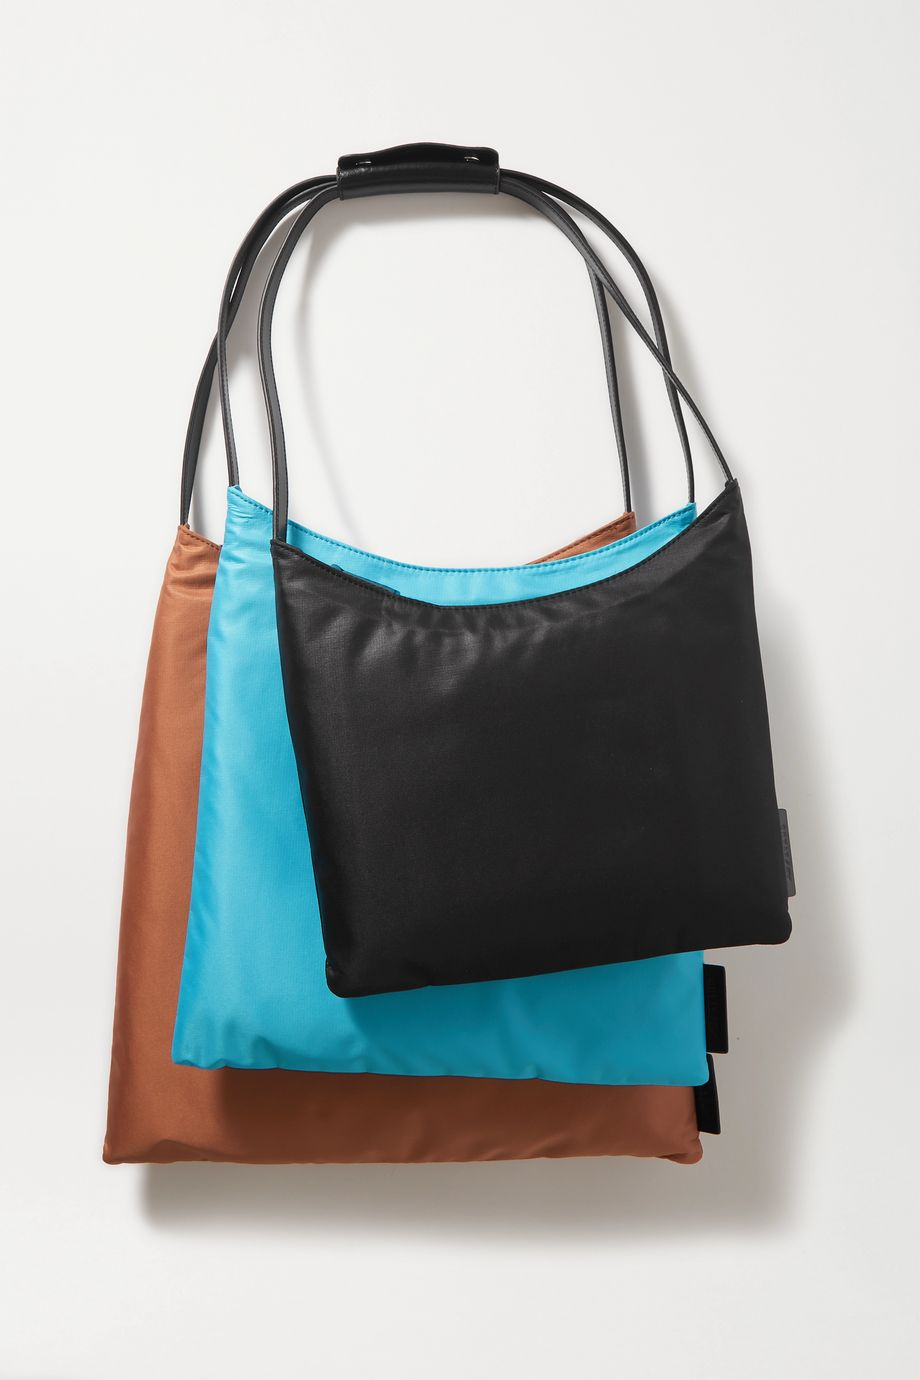 STAUD + New Balance set of three shell totes